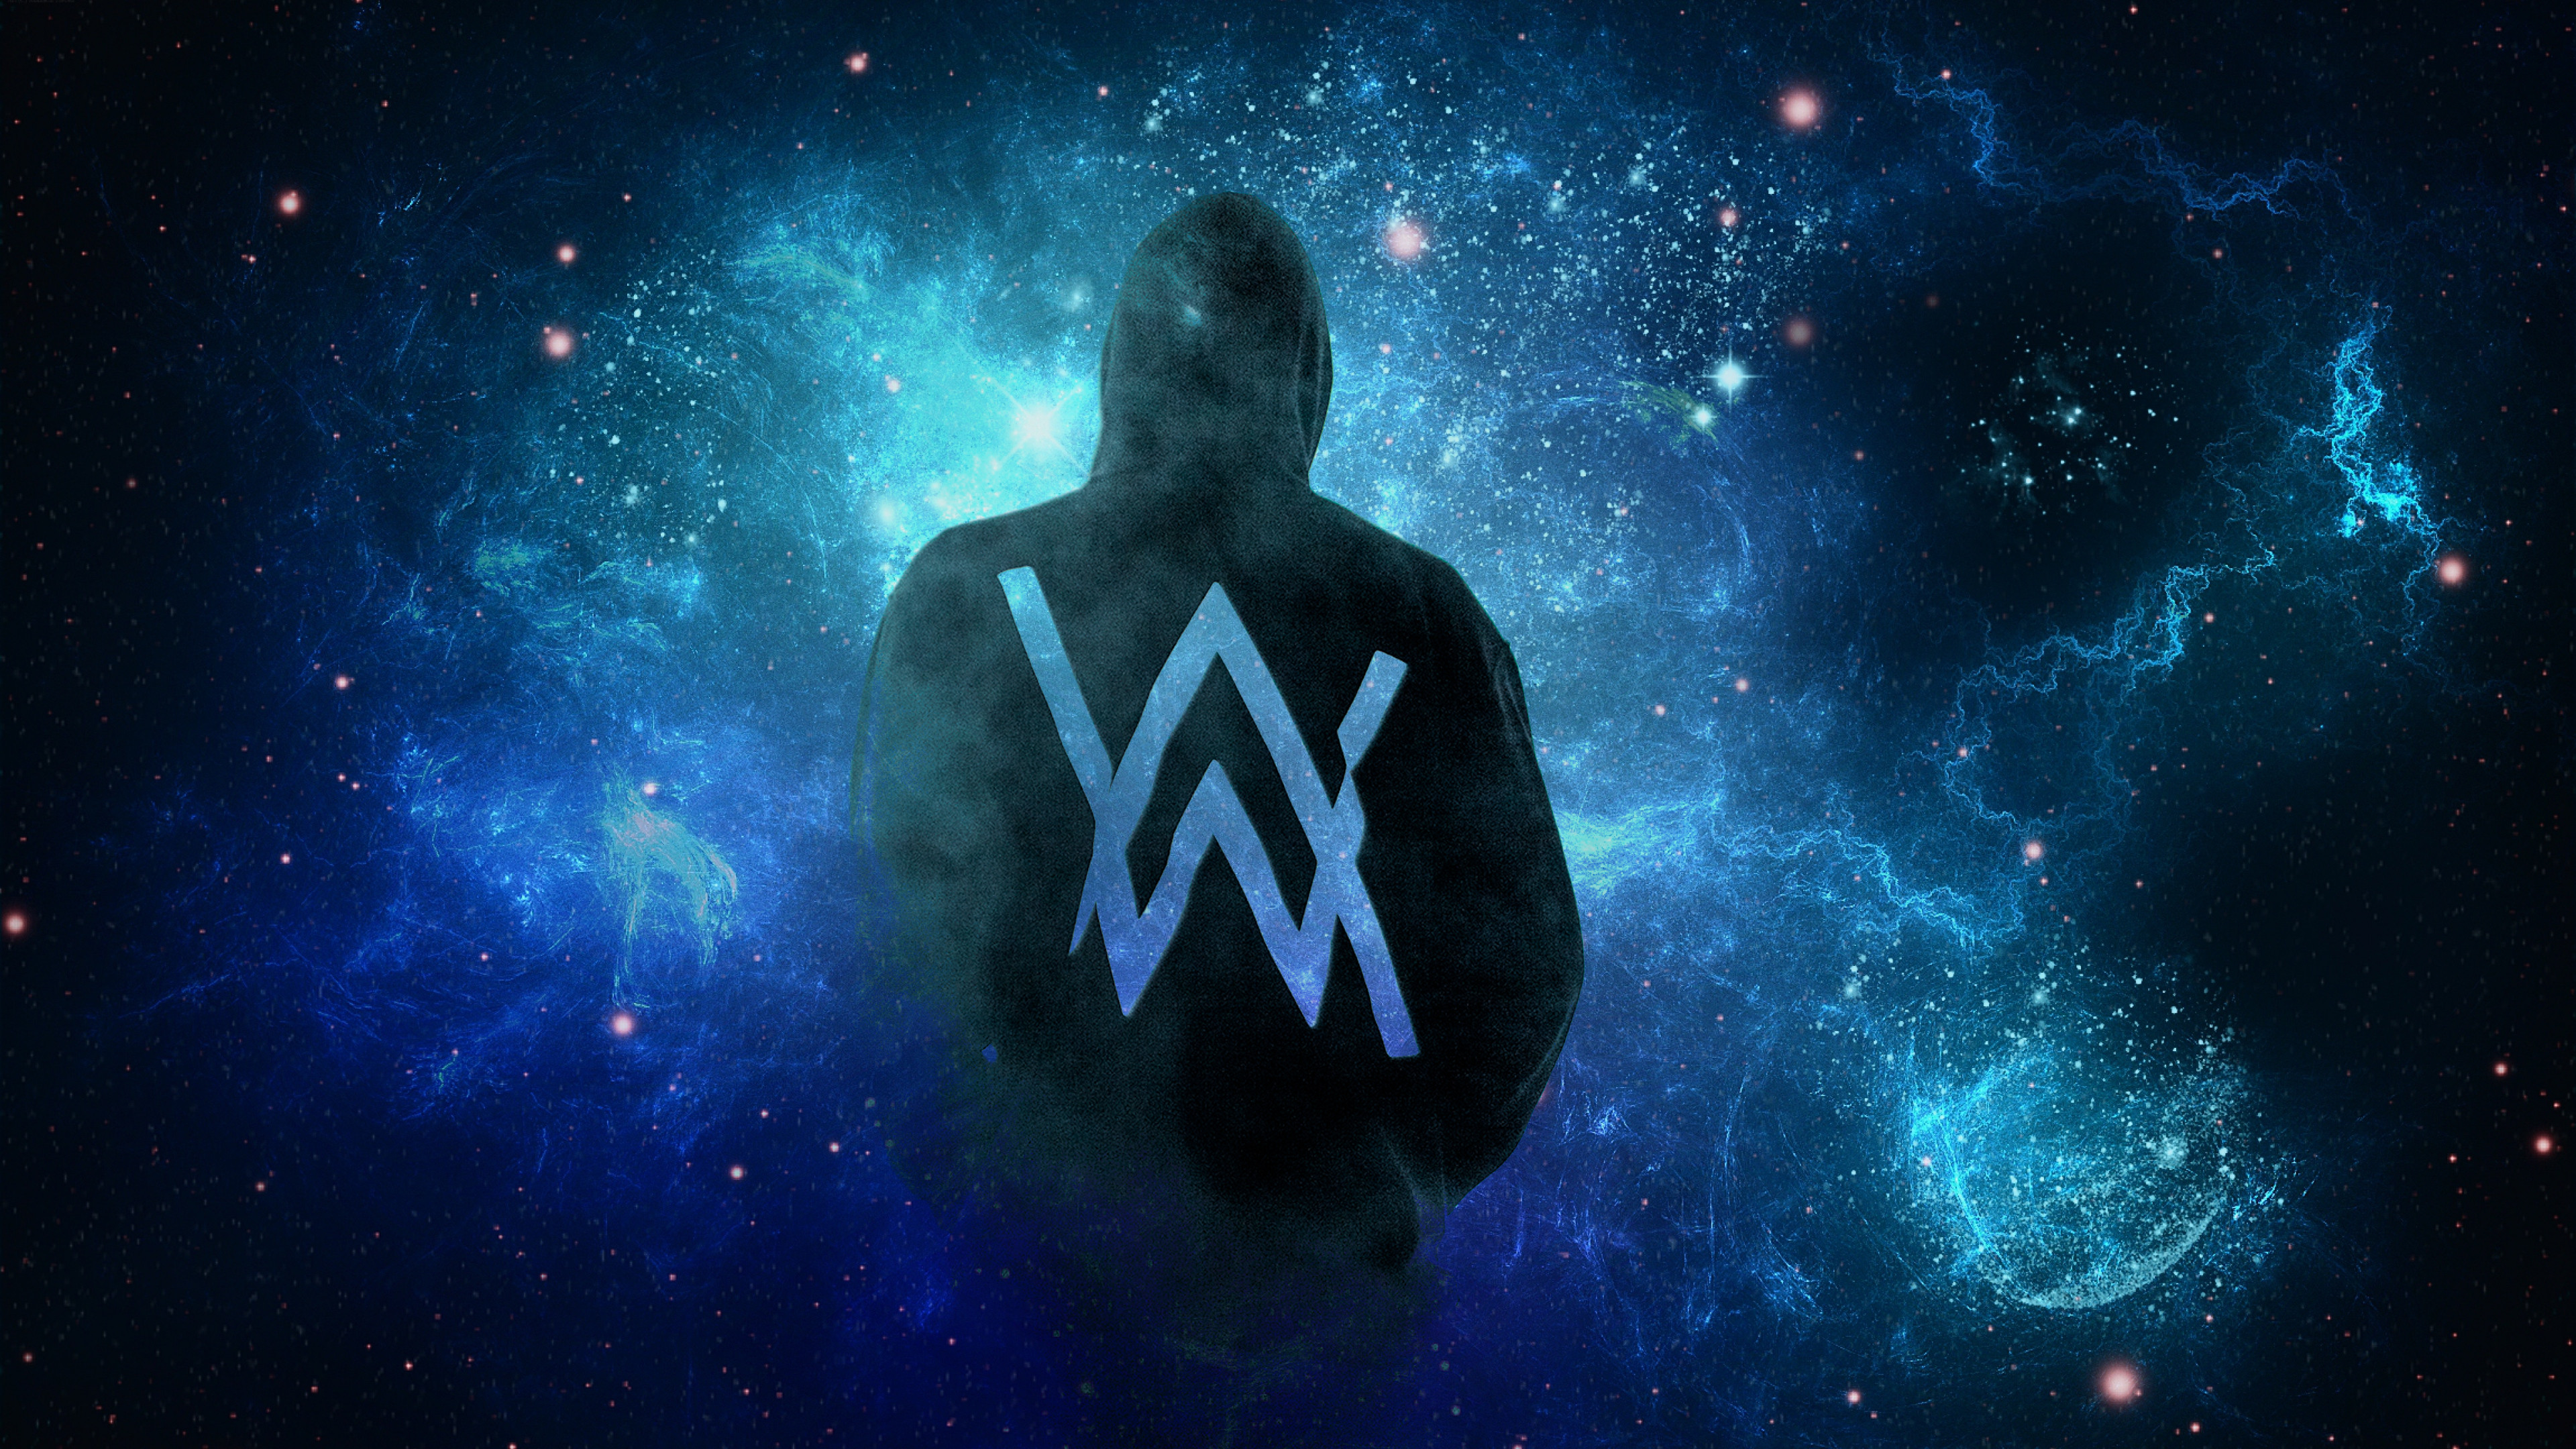 alan walker 4k ultra hd wallpaper and background image | 3840x2160